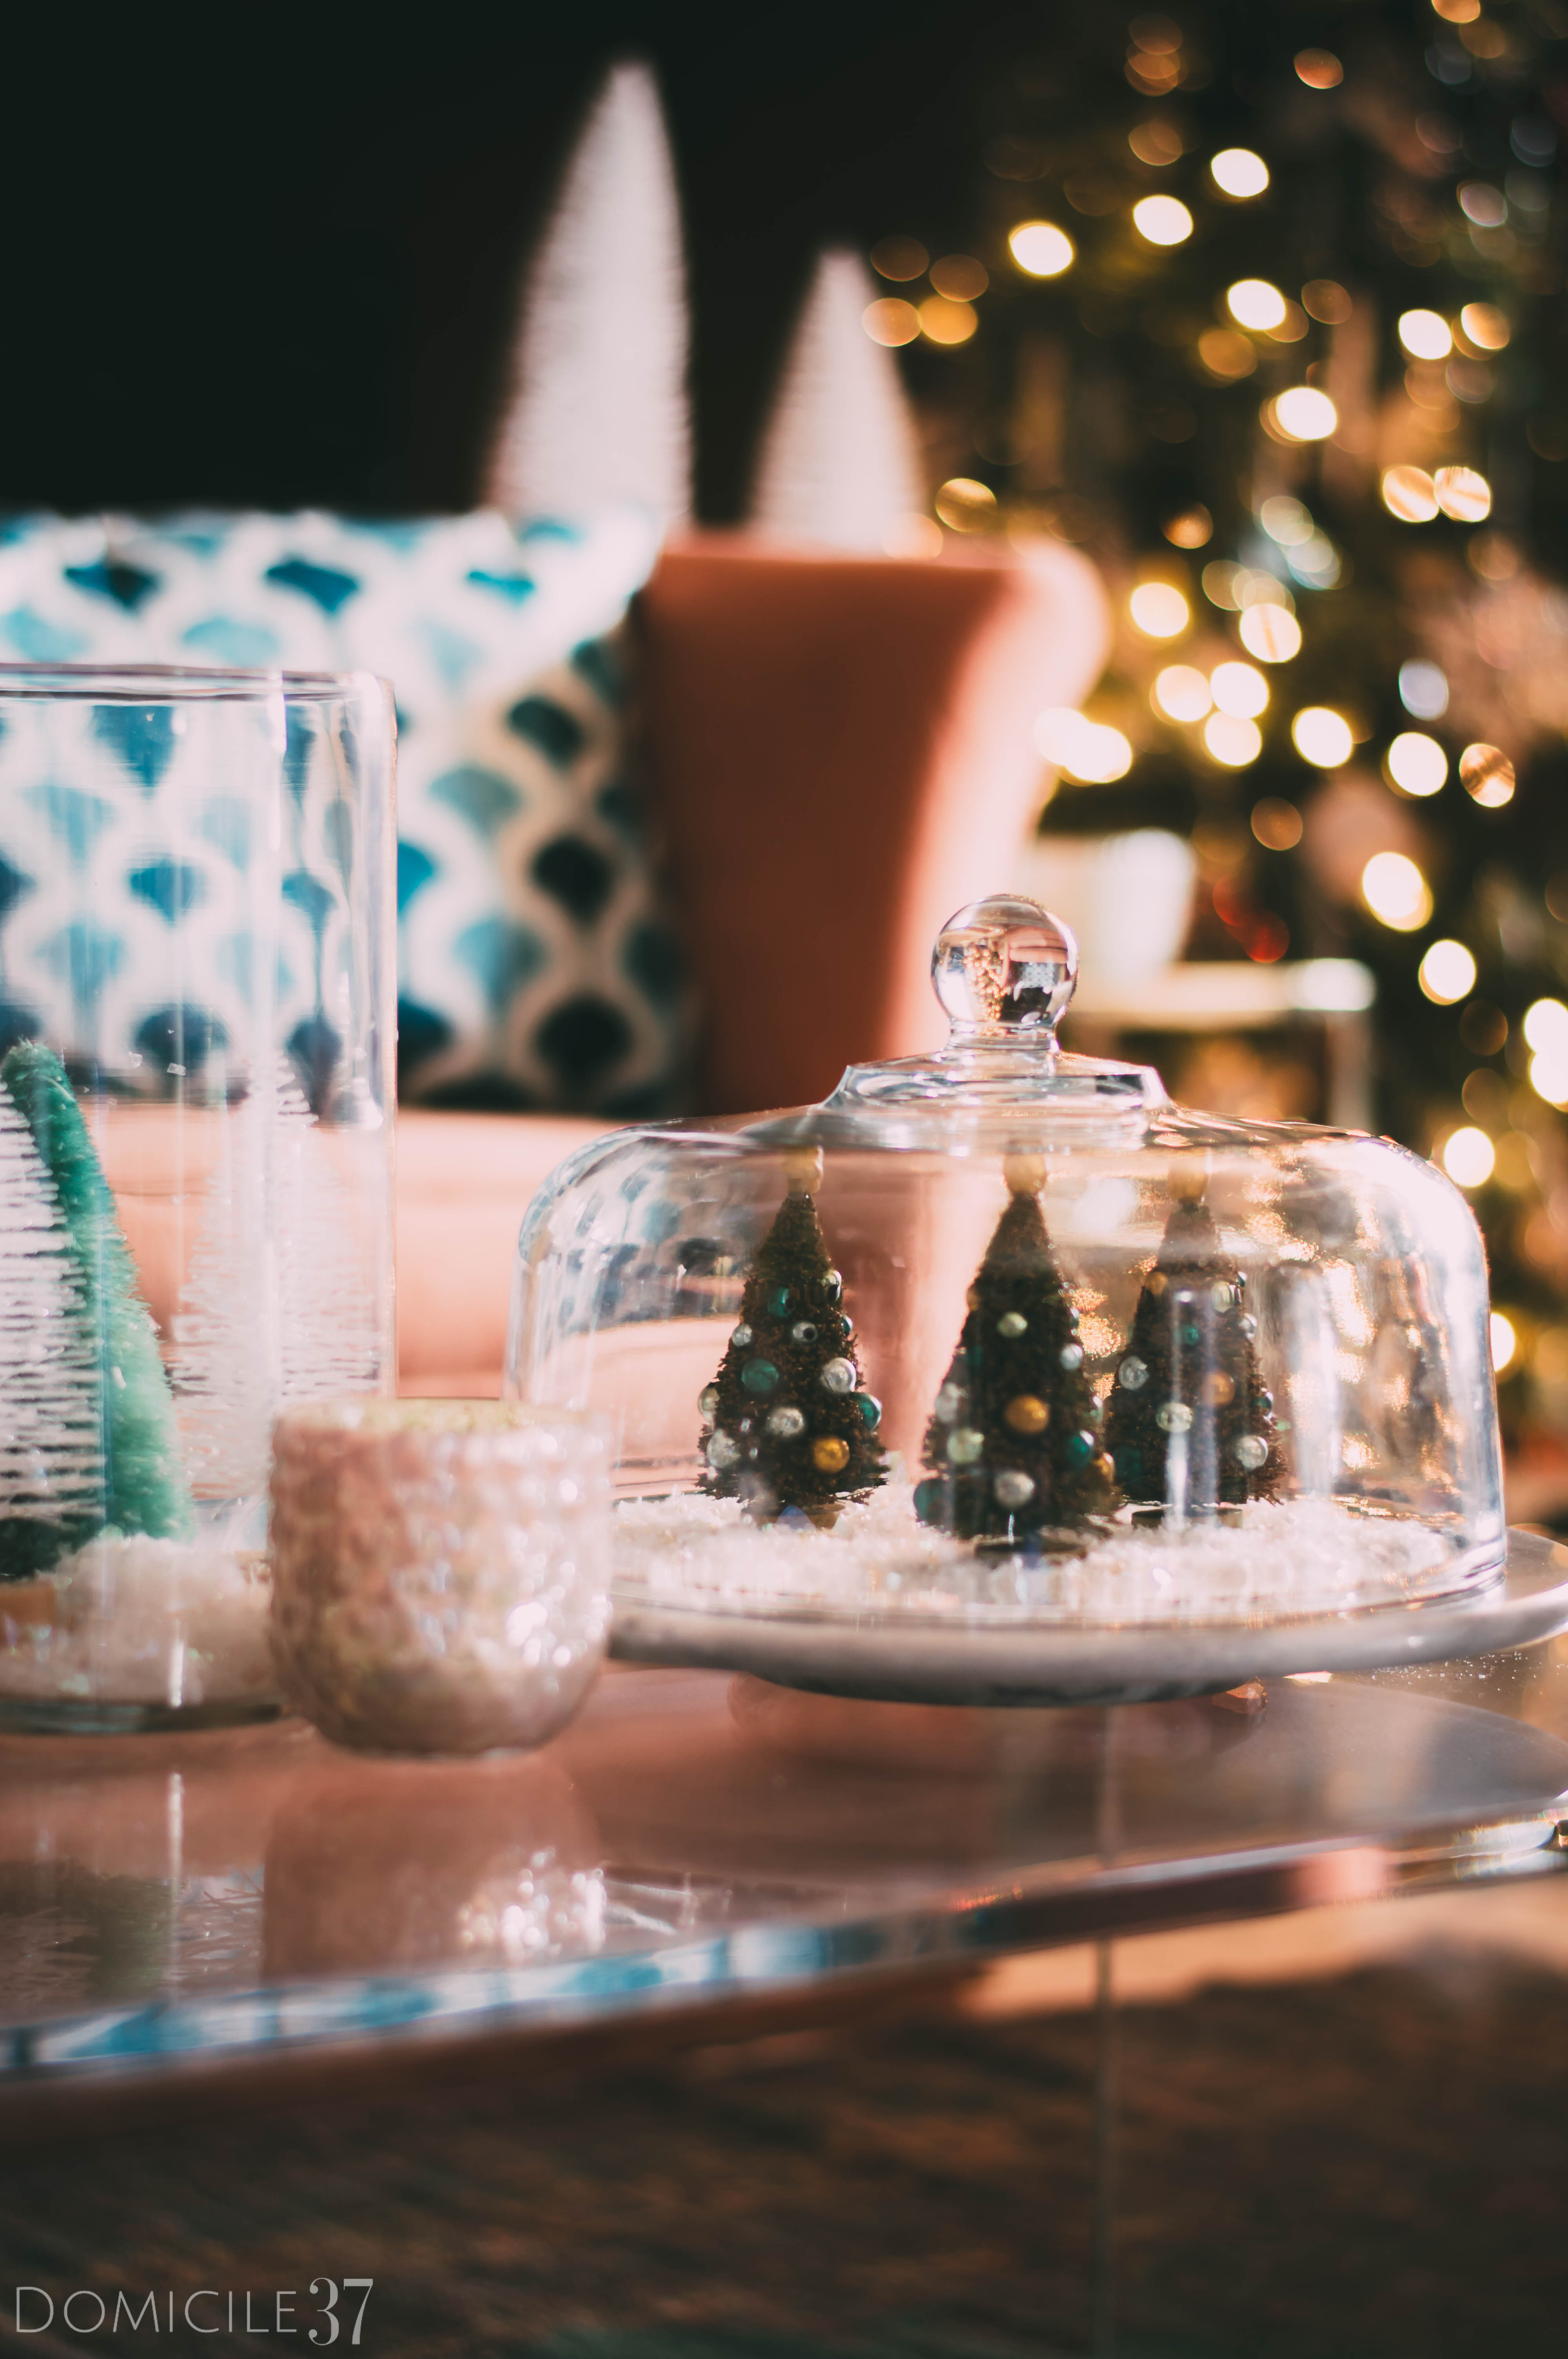 World Market Christmas | DIY Terrarium | Christmas Terrarium Ideas | Christmas tree decor | Vintage Christmas | Eclectic Christmas | #giftthemjoy | #worldmarket | Christmas table decor